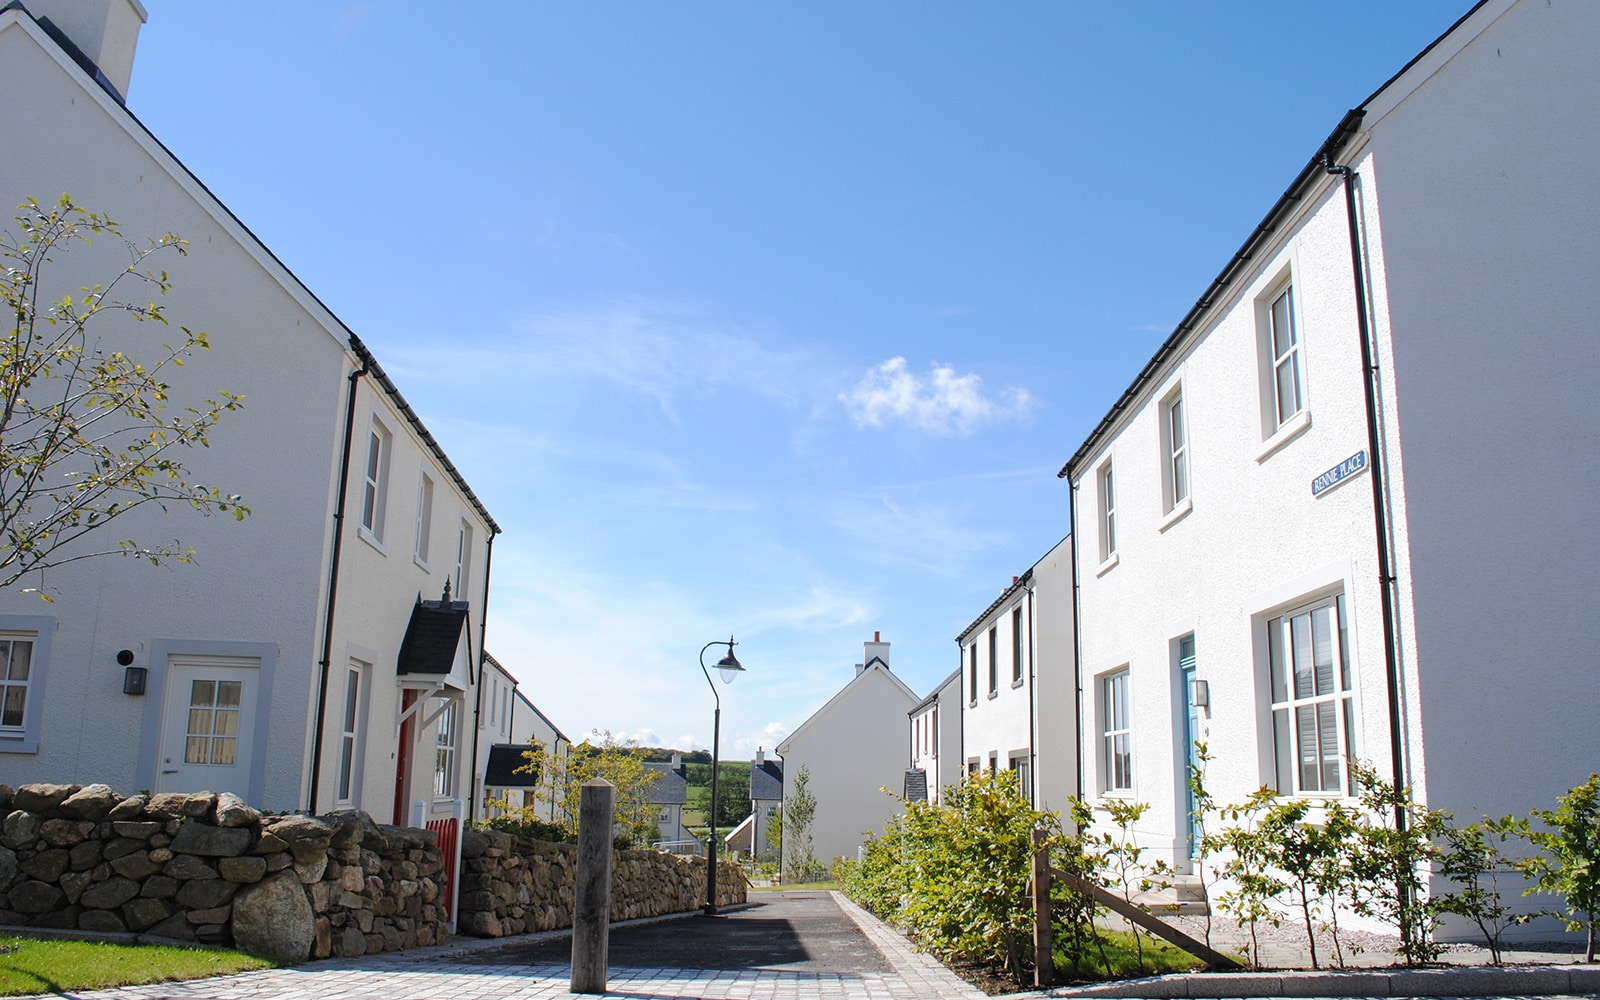 A network of paths weaves through the new settlement at Chapelton, Aberdeenshire.